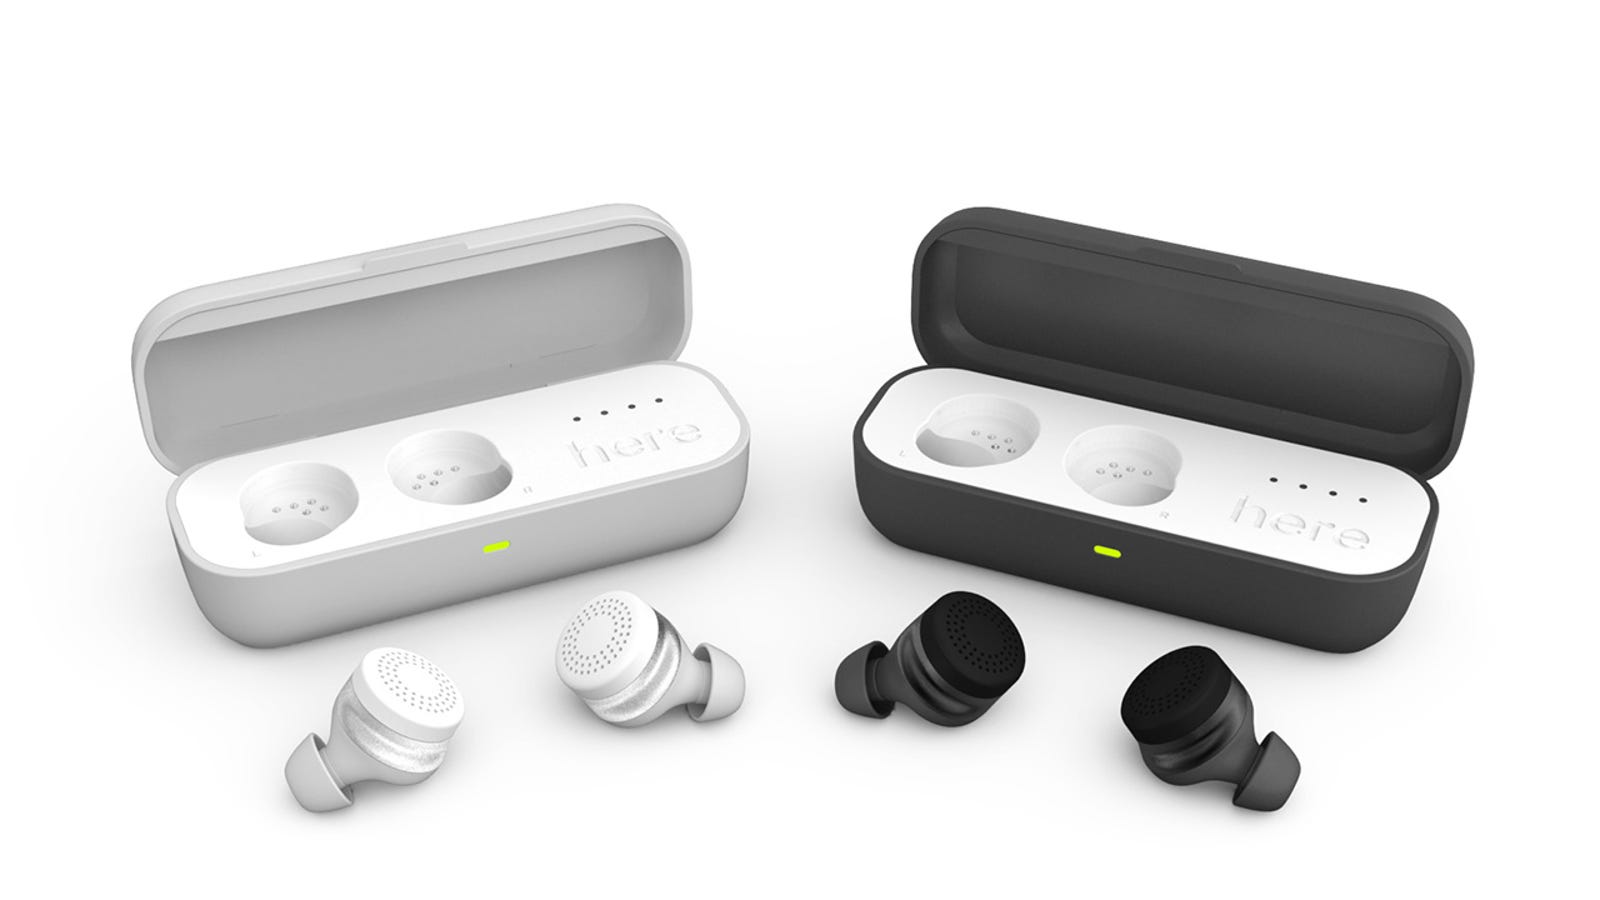 iphone x headphone amp - Bionic Earbuds Are Like a Smartphone You Can Leave in Your Ears Forever